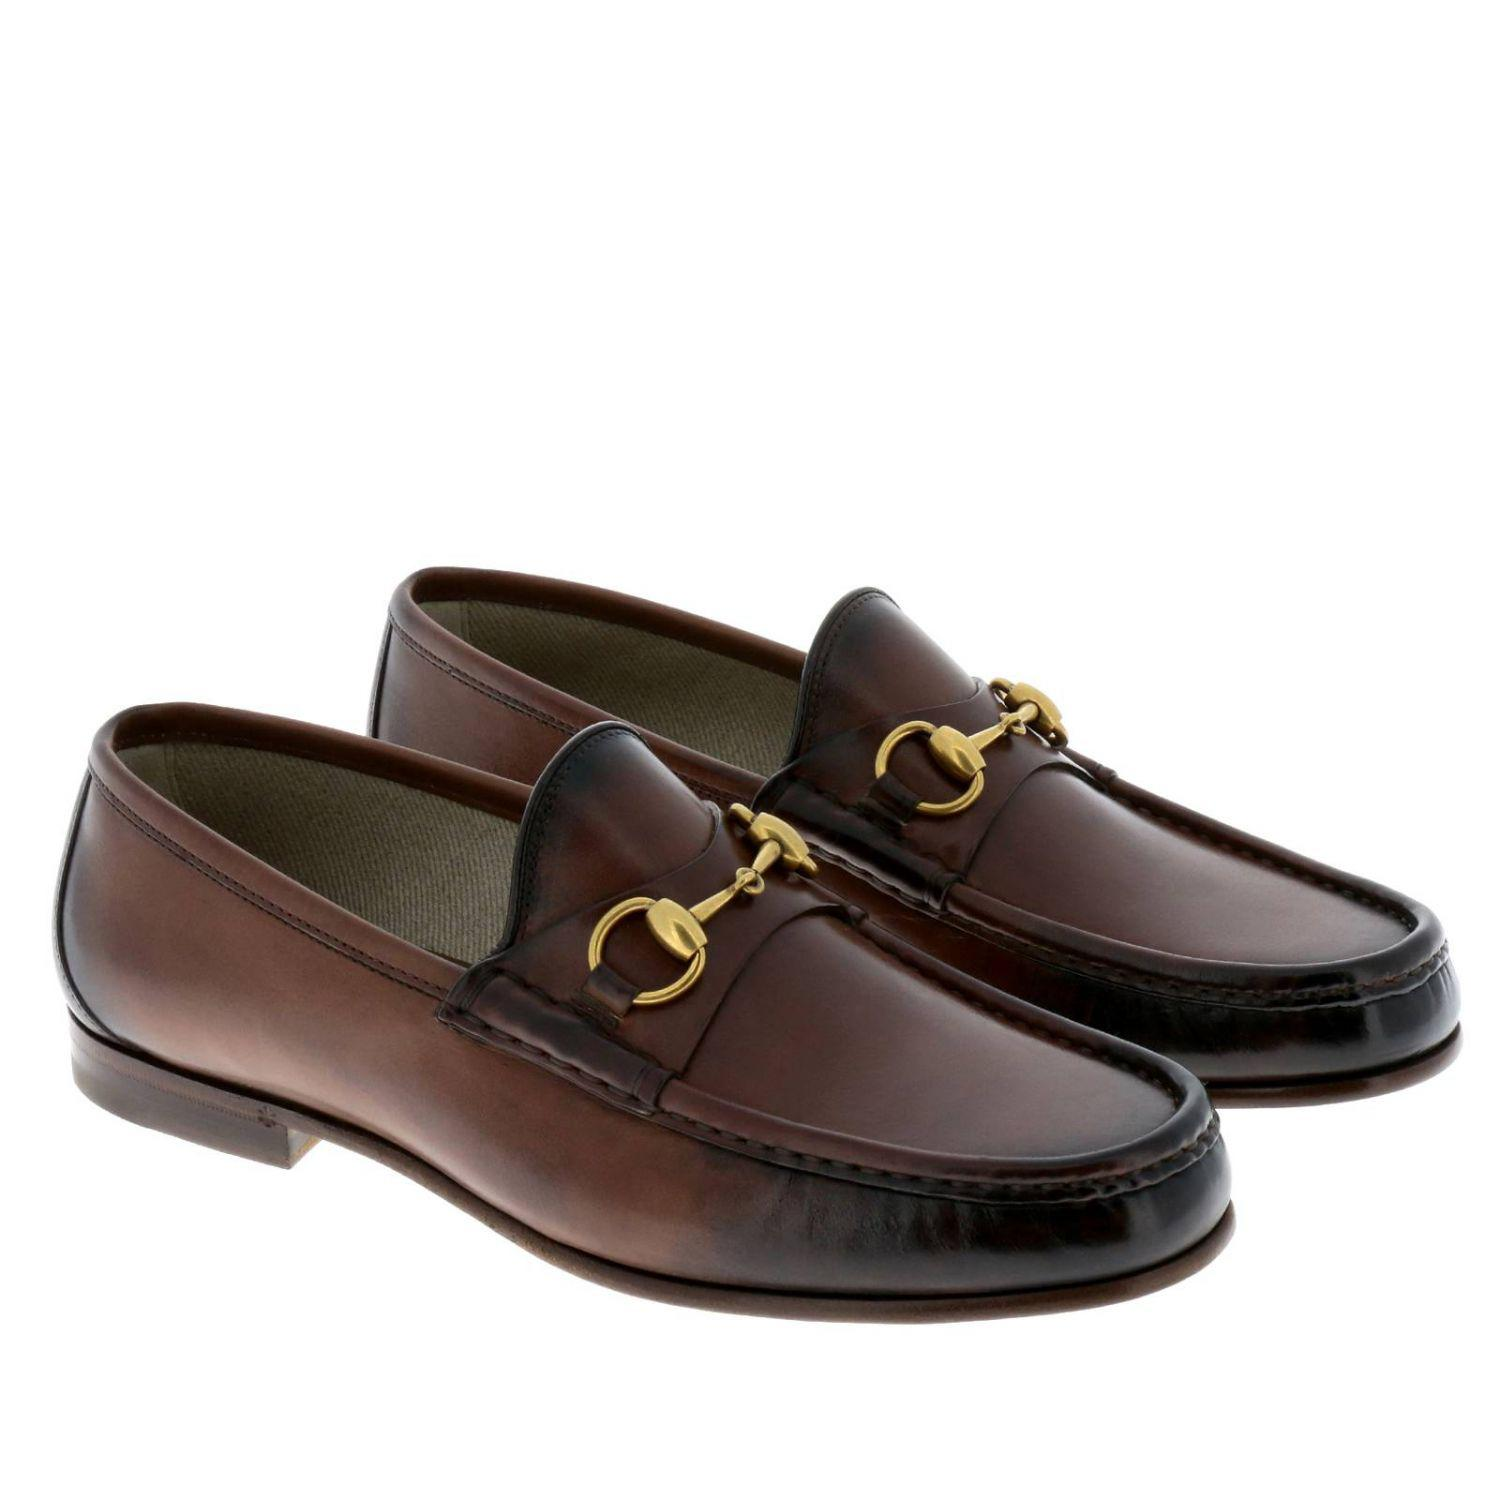 50b6b39a9775 Lyst - Gucci Loafers Shoes Men in Brown for Men